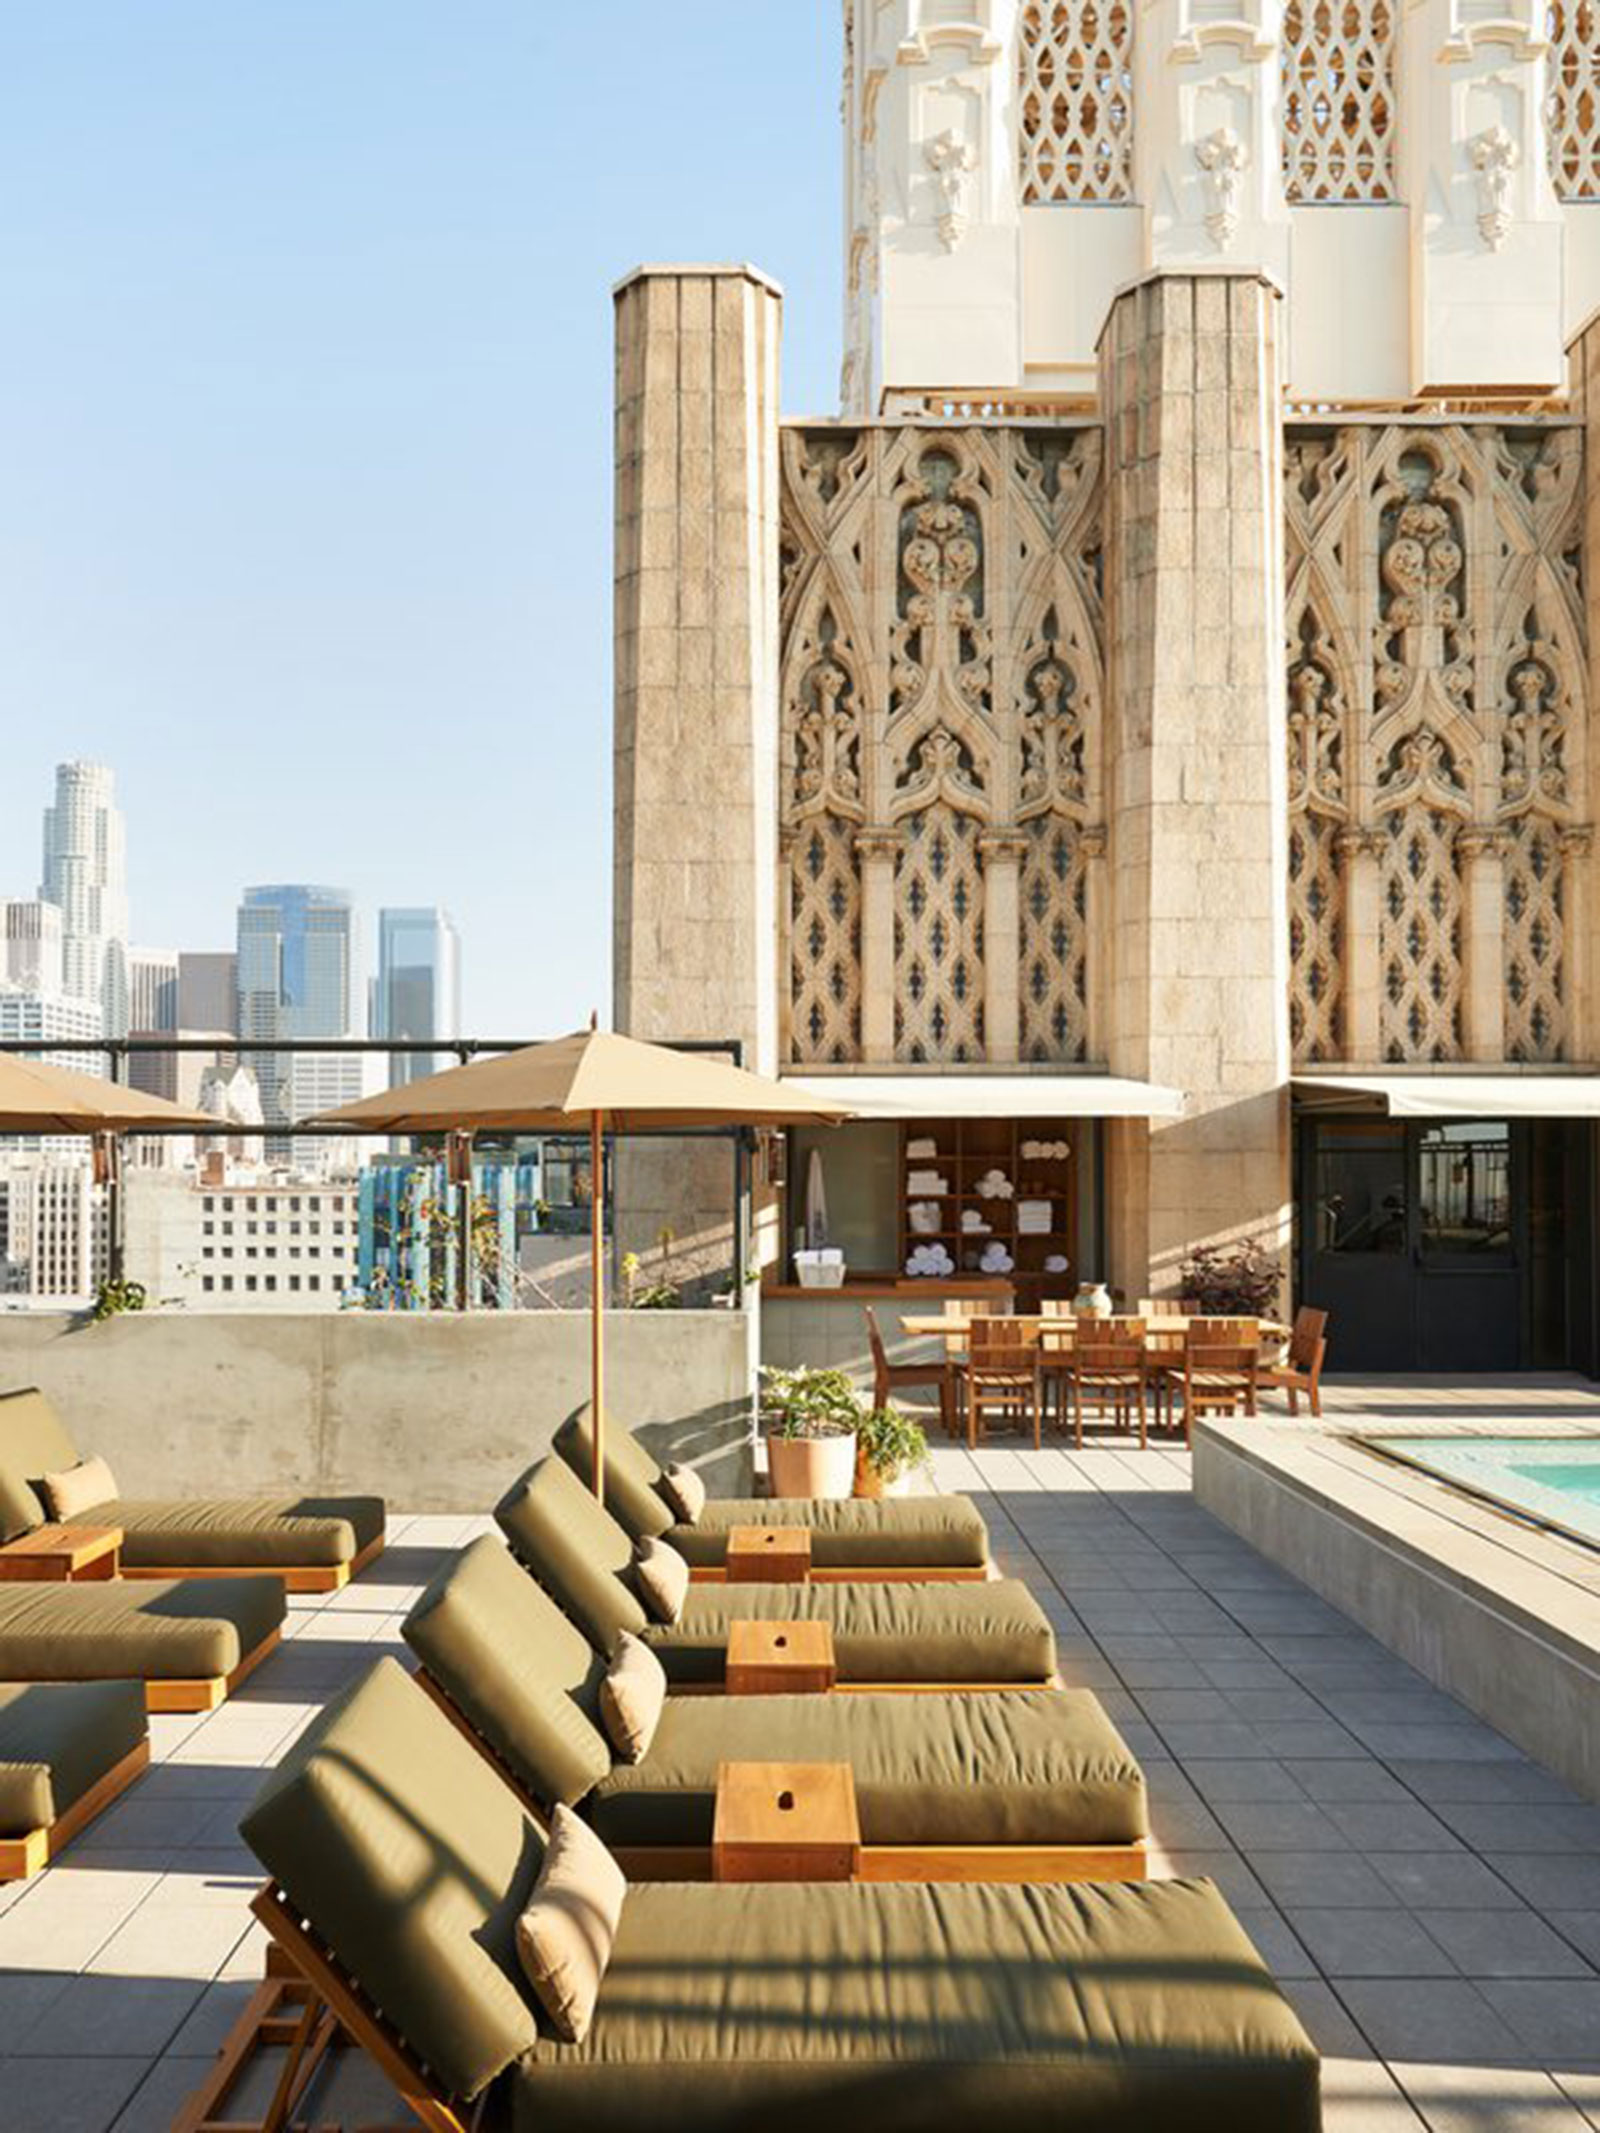 Ace_Hotel_The_Ink_Collective_Pret-a-Partir_Los_Angeles_3.jpg